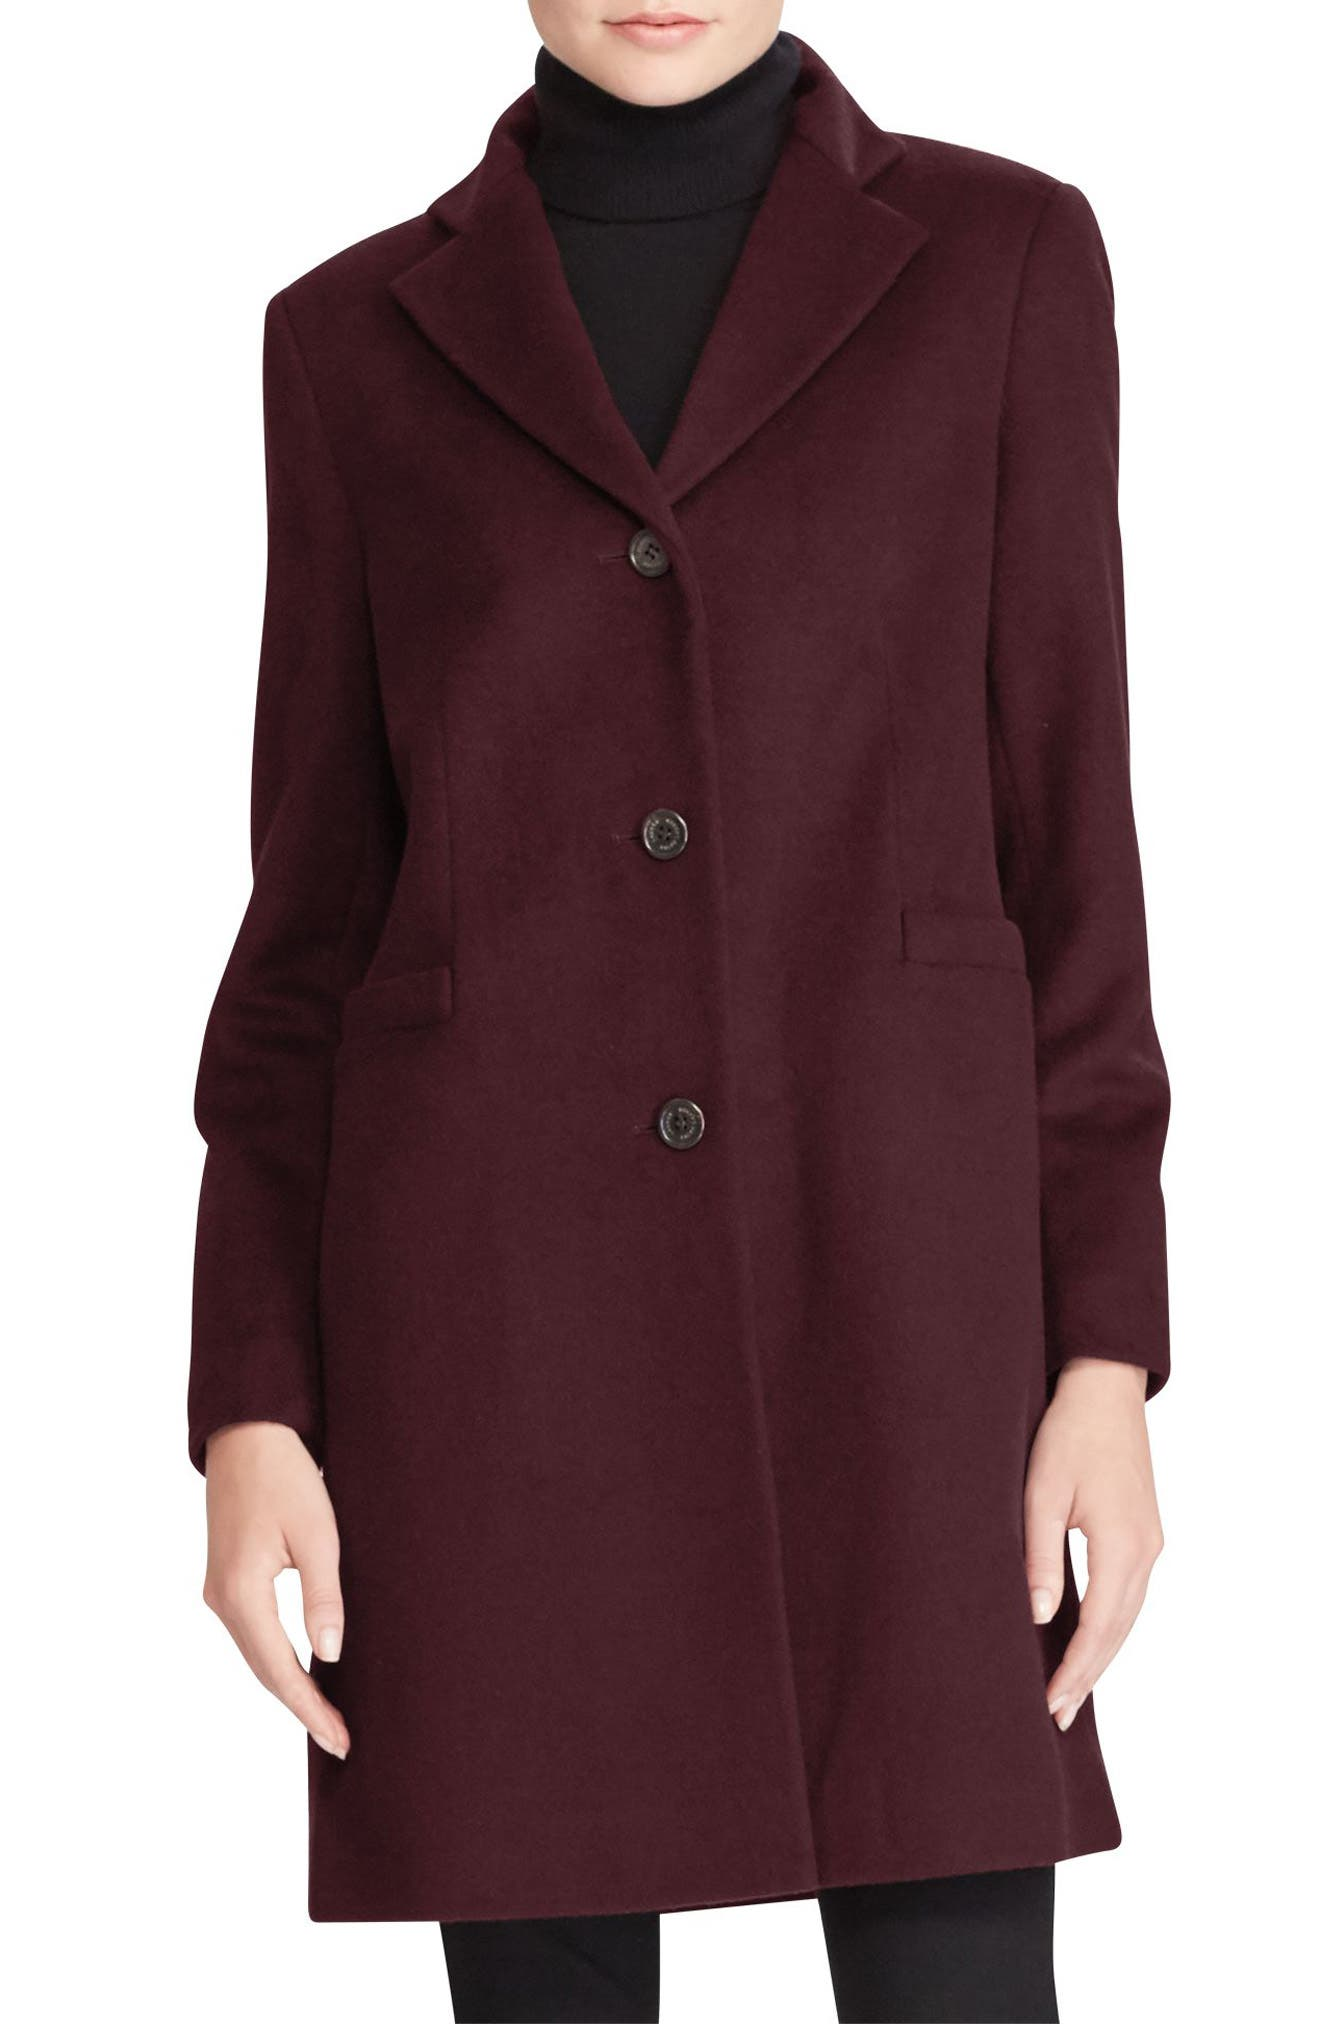 Alternate Image 1 Selected - Lauren Ralph Lauren Wool Blend Reefer Coat (Regular & Petite)